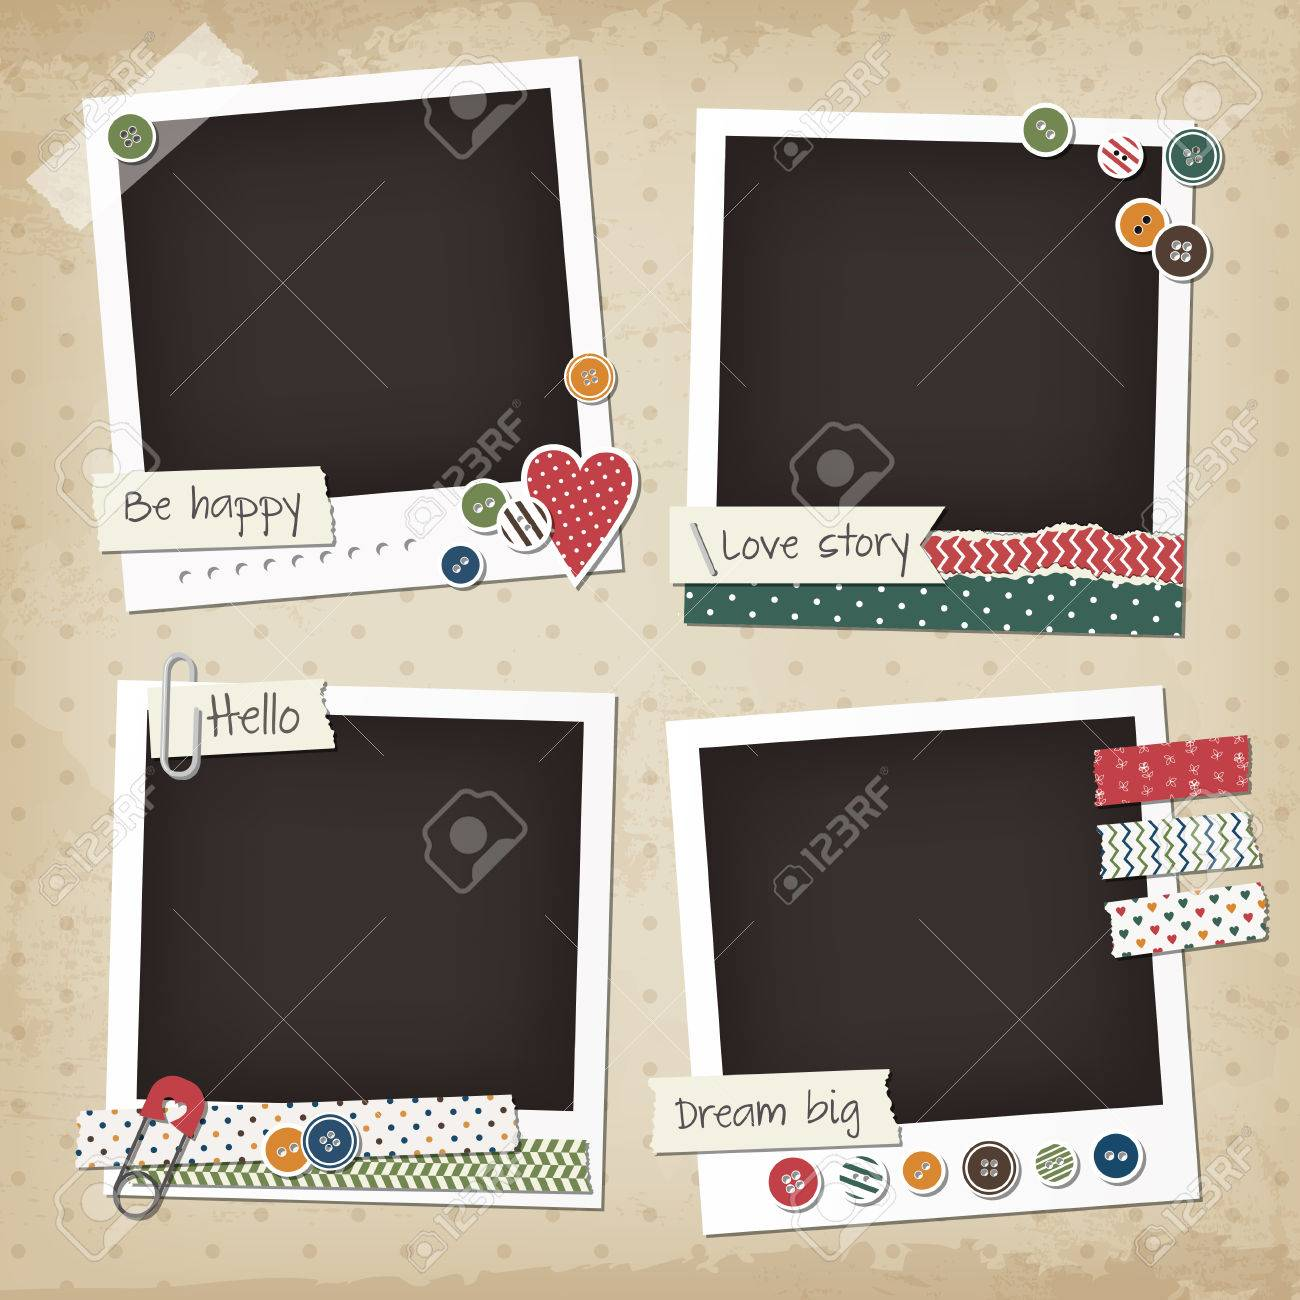 Fotolijst Stickers Scrapbook Vintage Set Of Photo Frames With Buttons Stickers